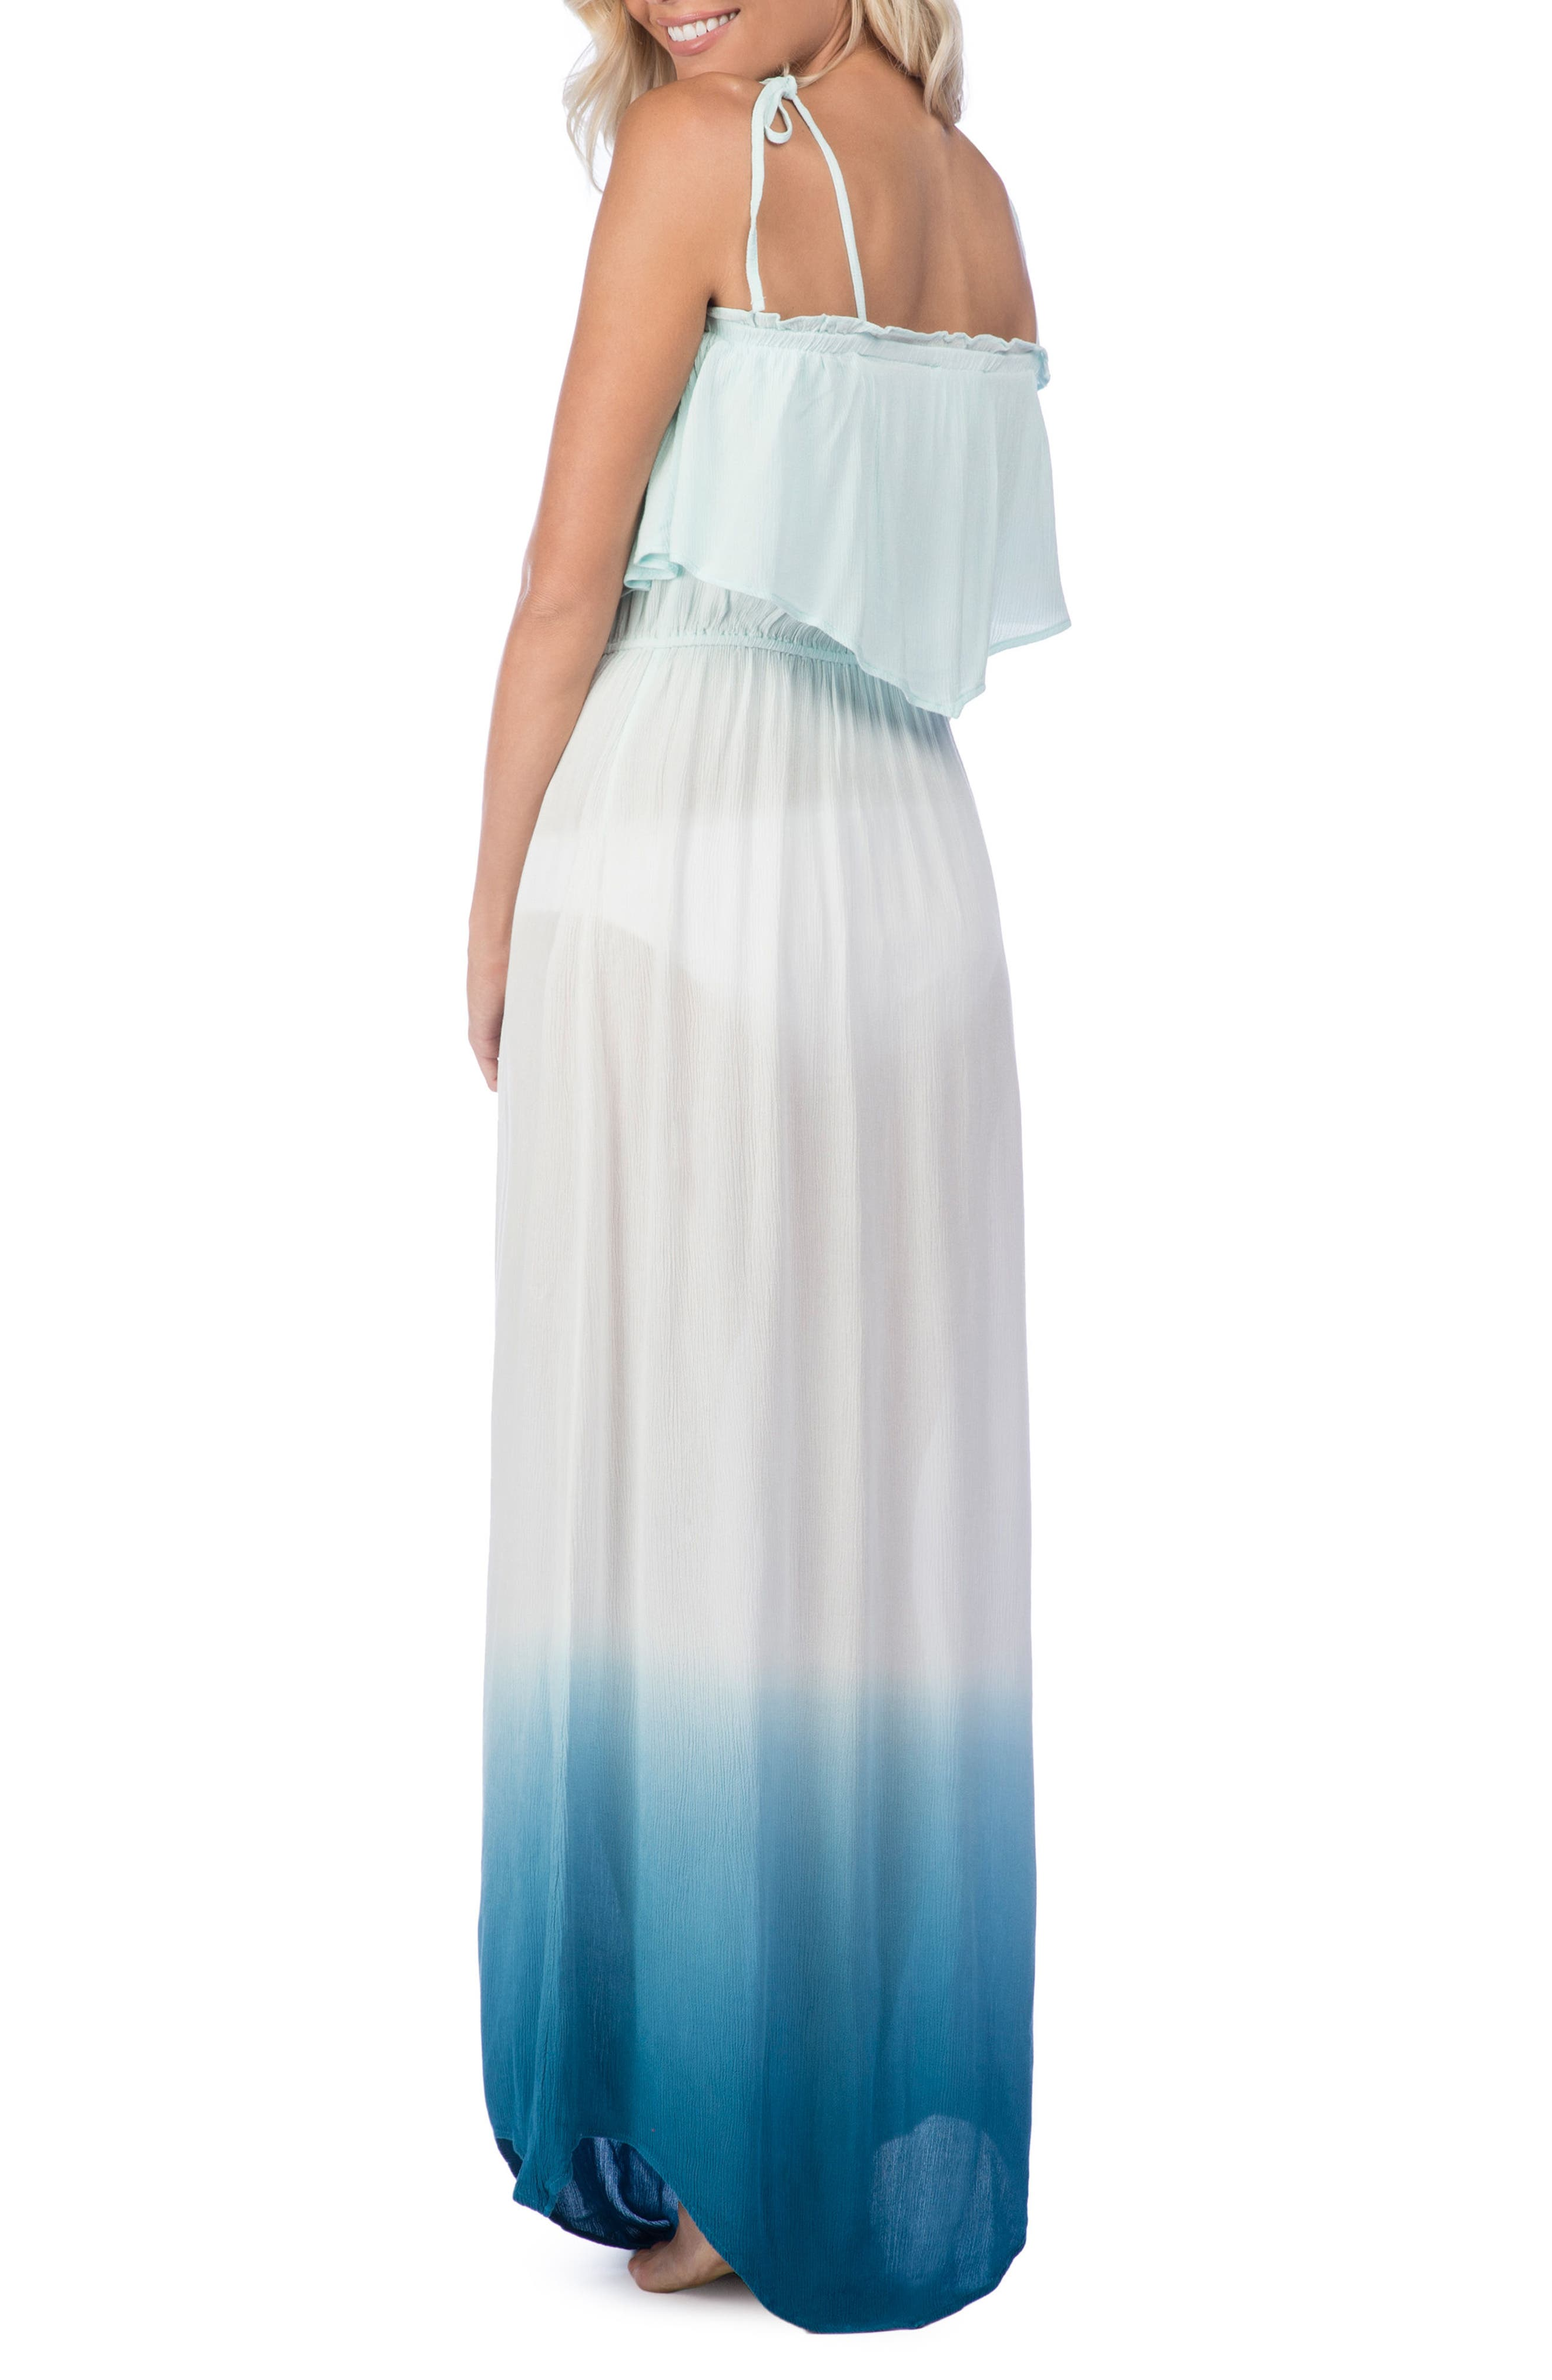 Paloma Dip Dye Cover-Up Maxi Dress,                             Alternate thumbnail 2, color,                             400